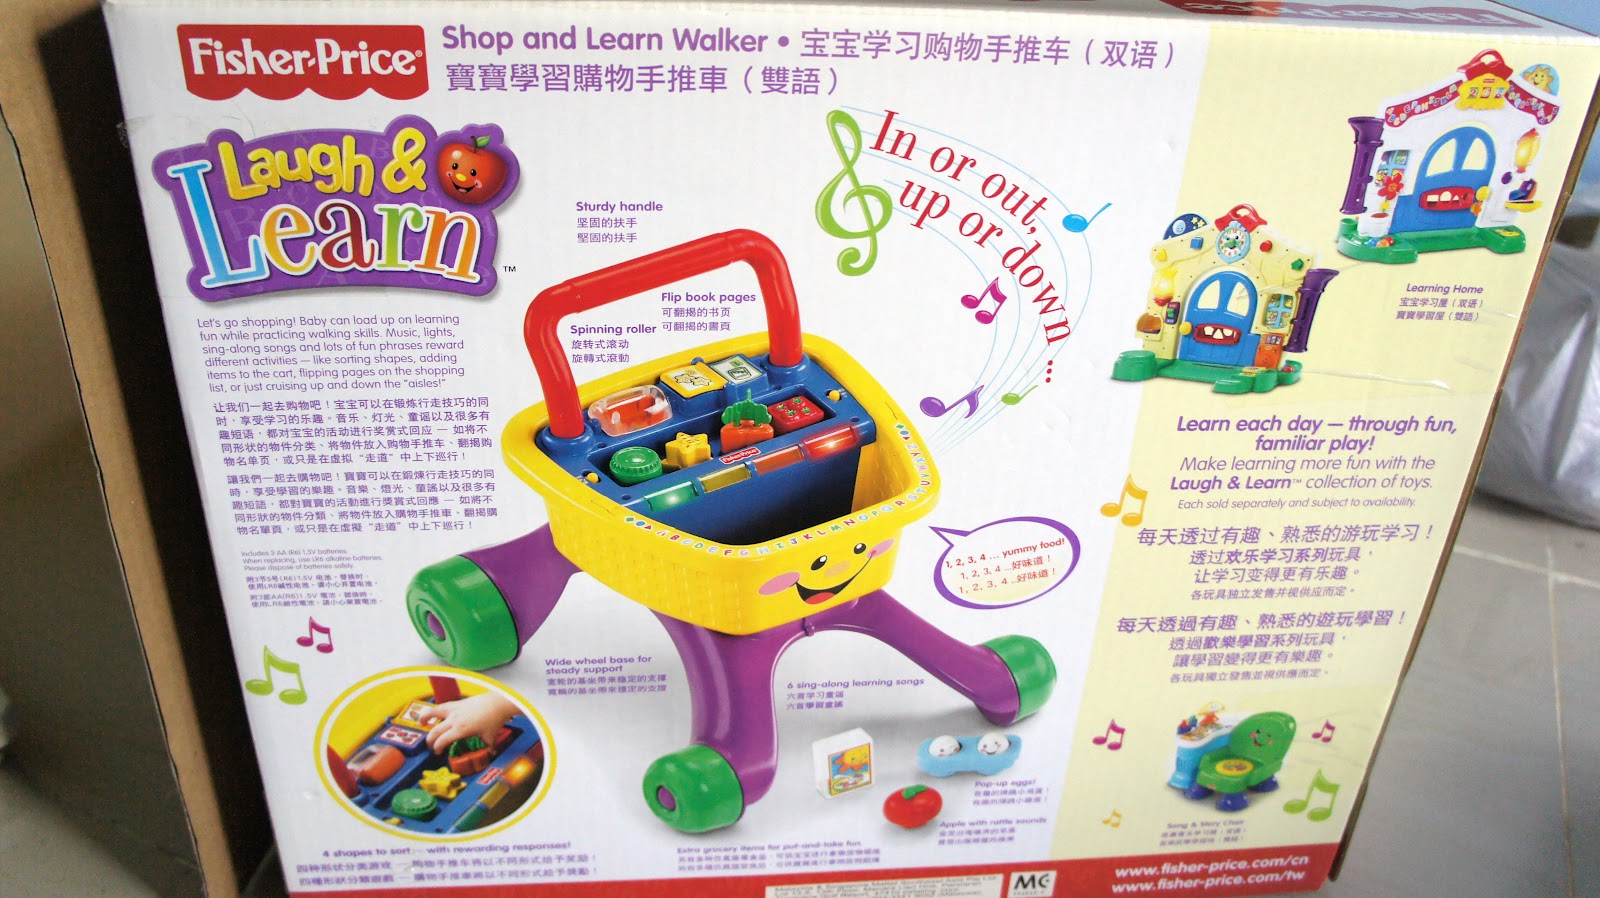 Laugh & Learn Fruits & Fun Learning Market - Fisher-Price